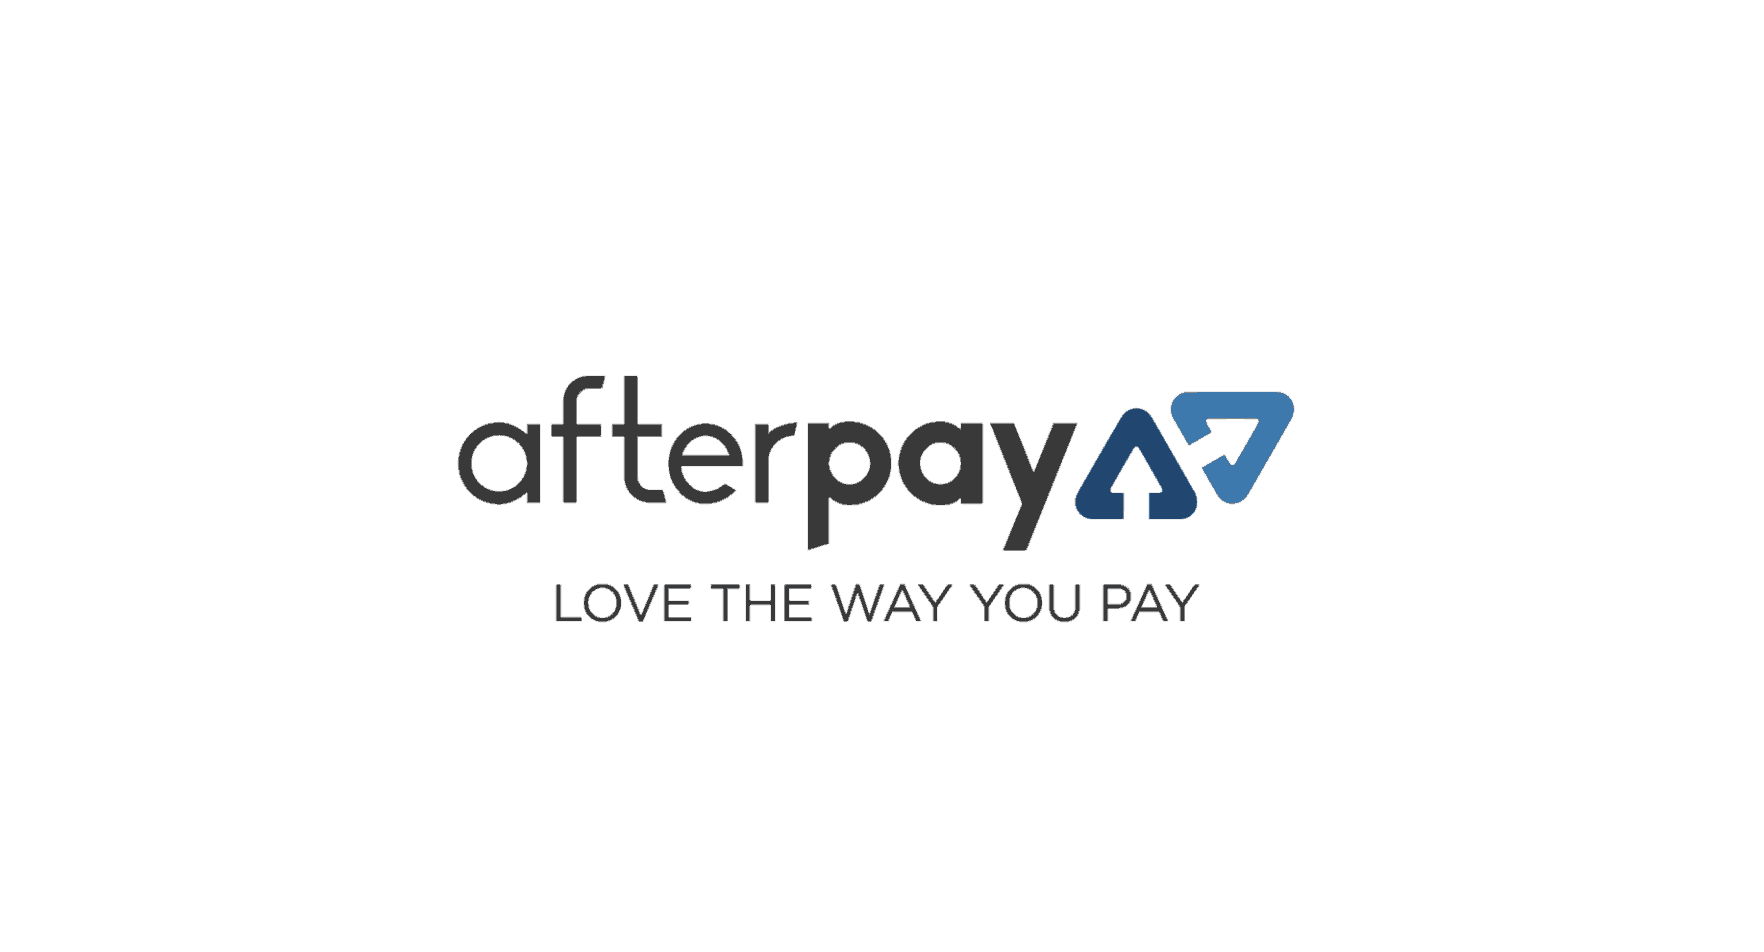 Short-sellers stepping up attack on Afterpay Ltd and these ASX stocks - Motley Fool Australia